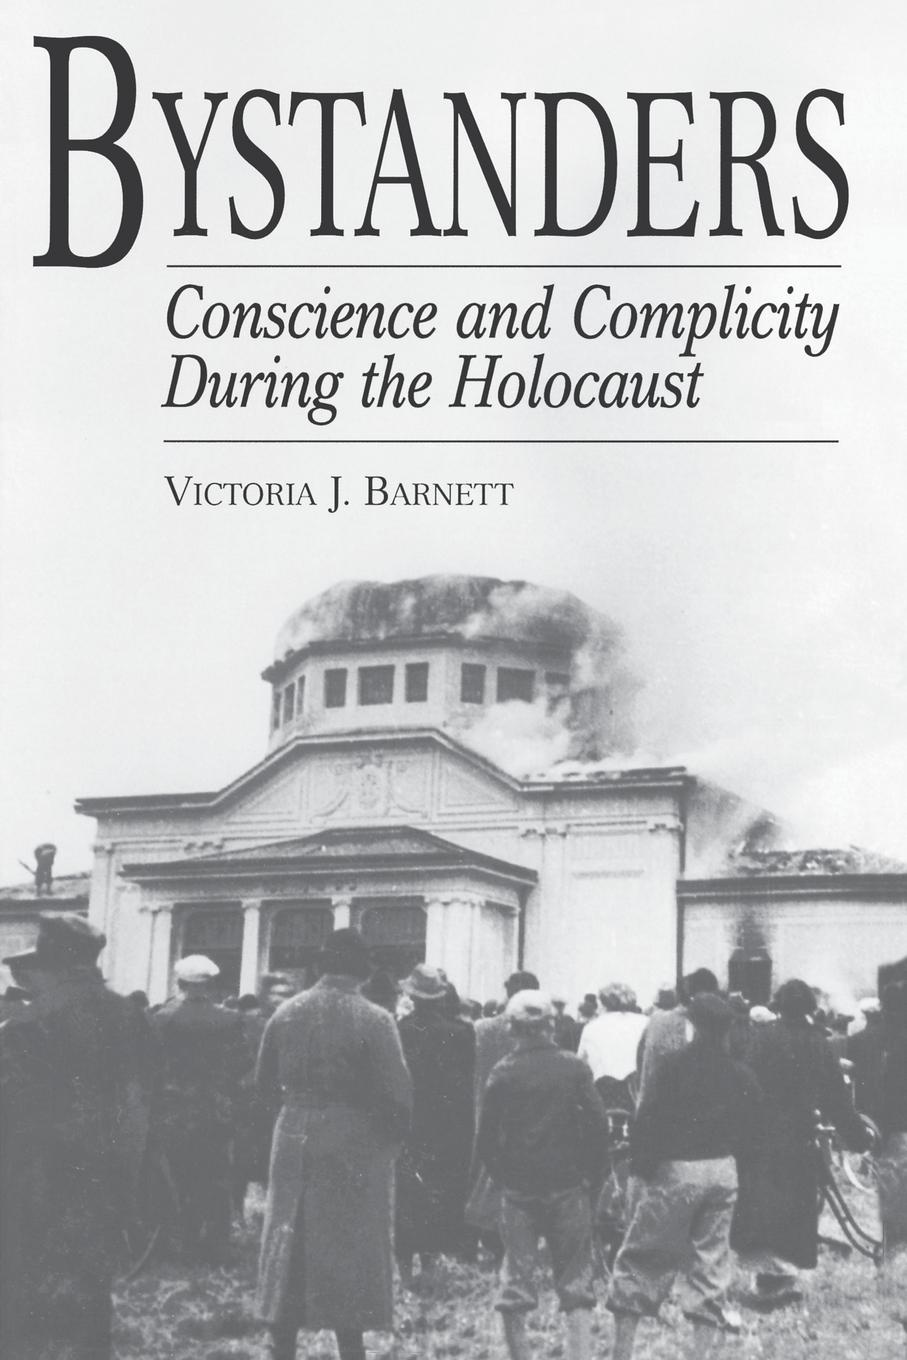 Victoria J. Barnett Bystanders. Conscience and Complicity During the Holocaust